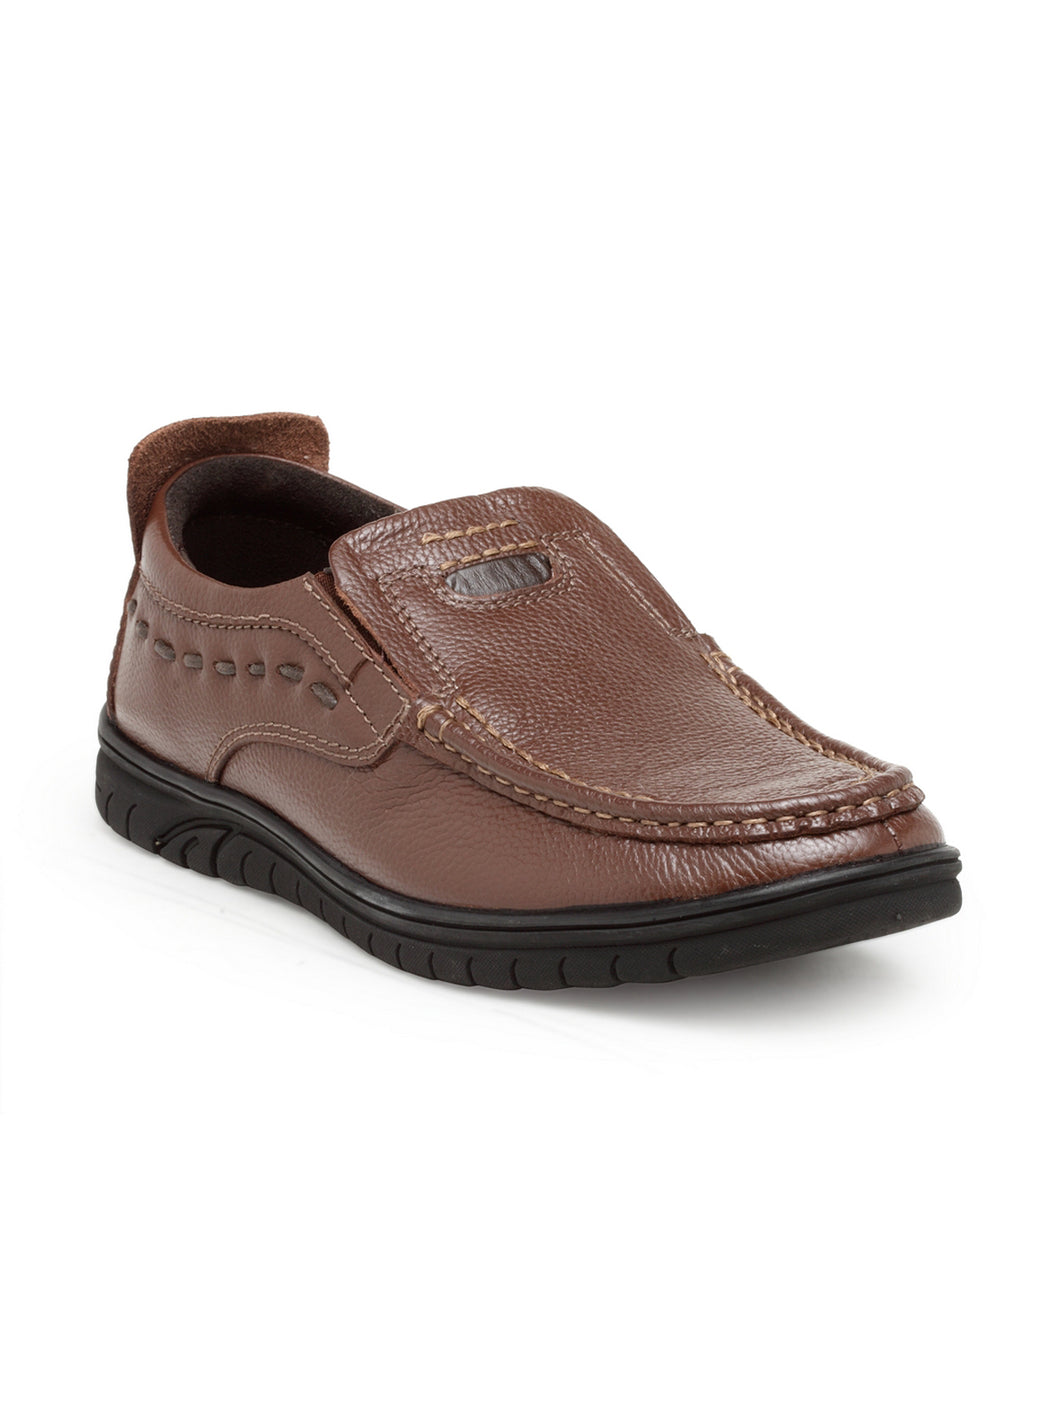 Teakwood Leathers Men's Brown Casual Slip-On Shoes